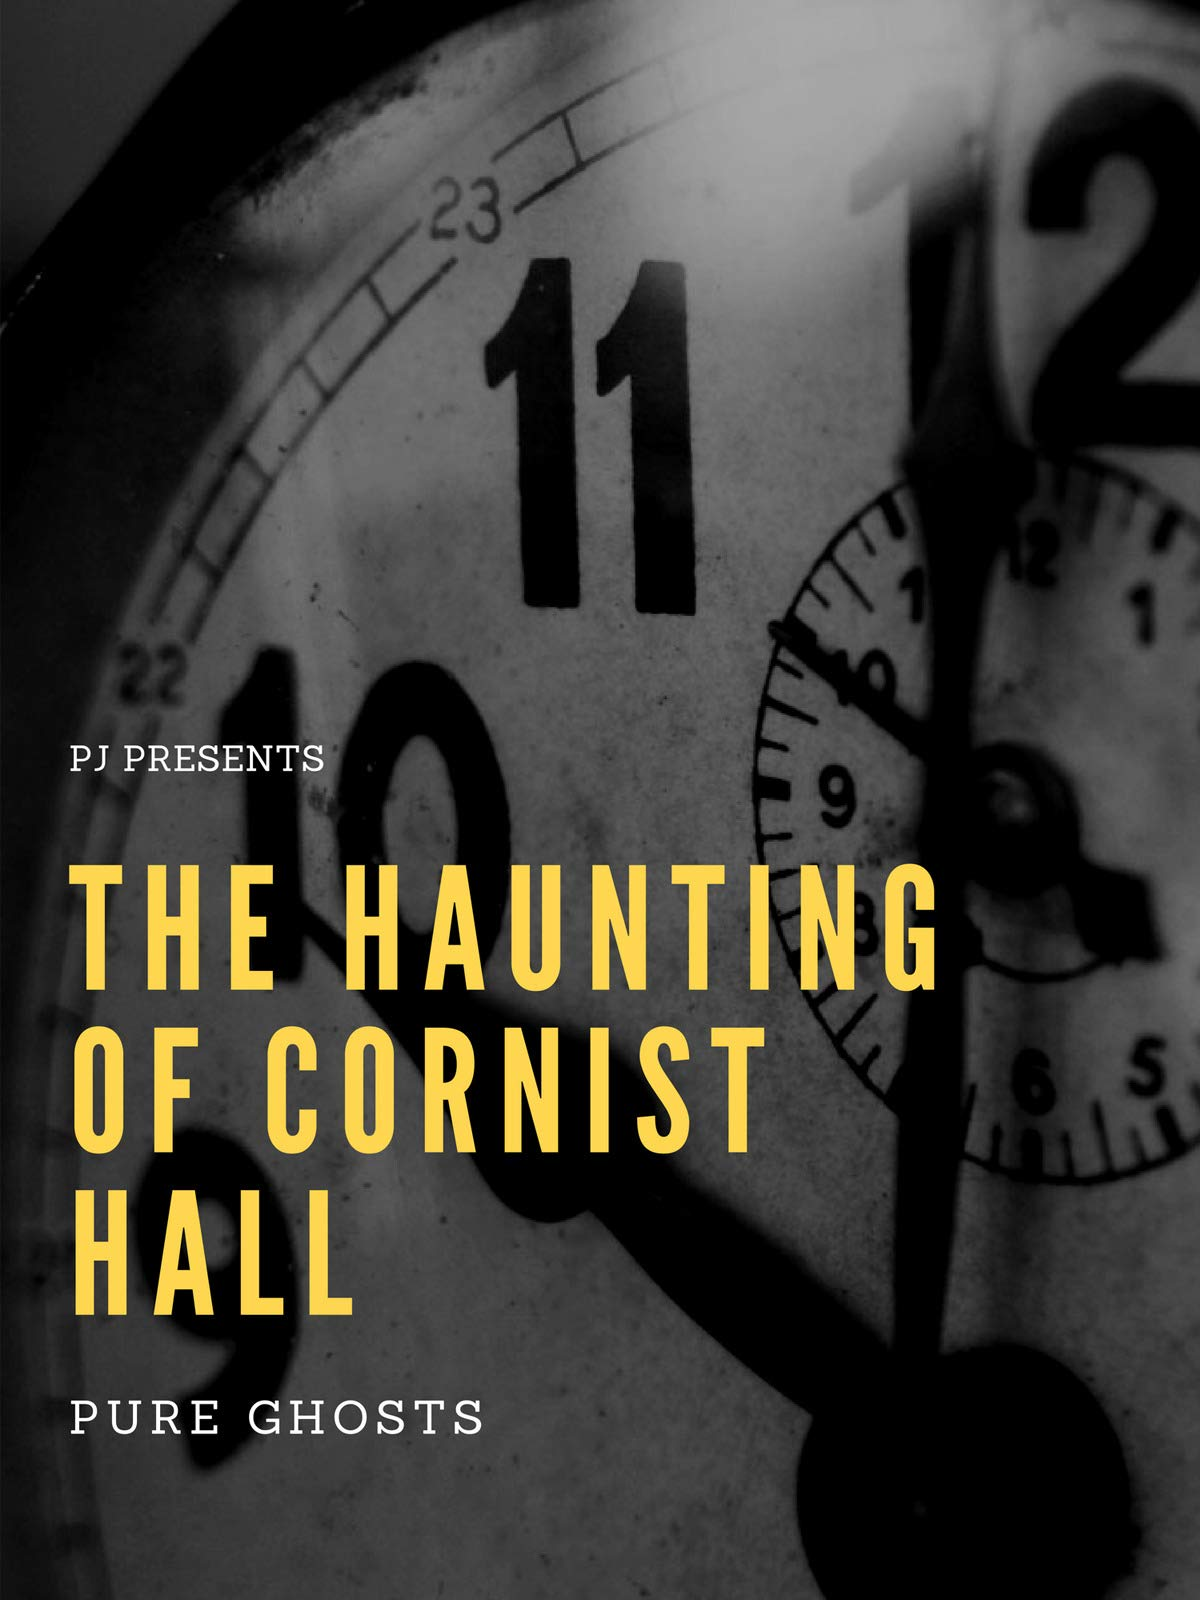 The Haunting of Cornist Hall